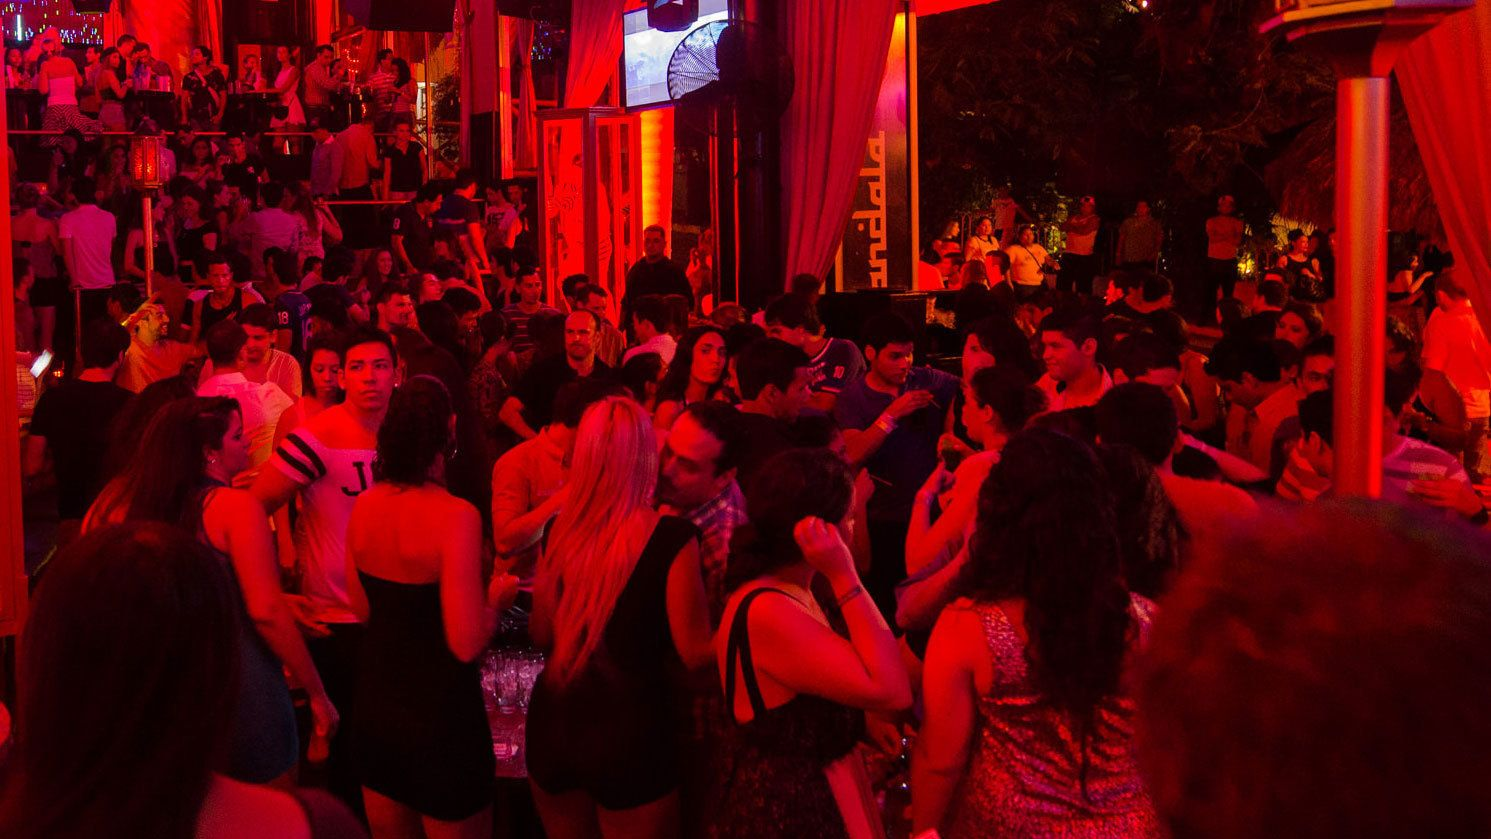 Interior view of nightclub partygoers dancing and socializing.